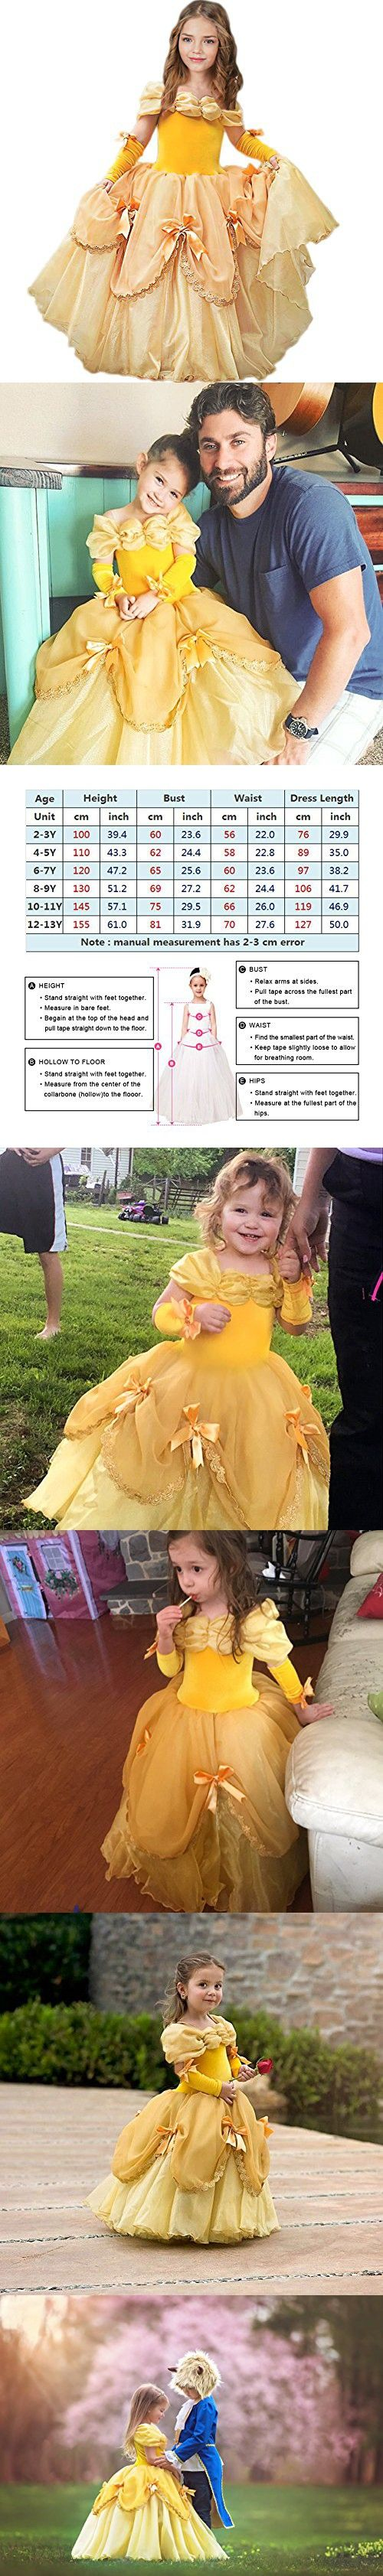 CQDY Belle Costume for Girls Yellow Princess Dress Party Christmas Halloween Cosplay Dress up 2-13 Years